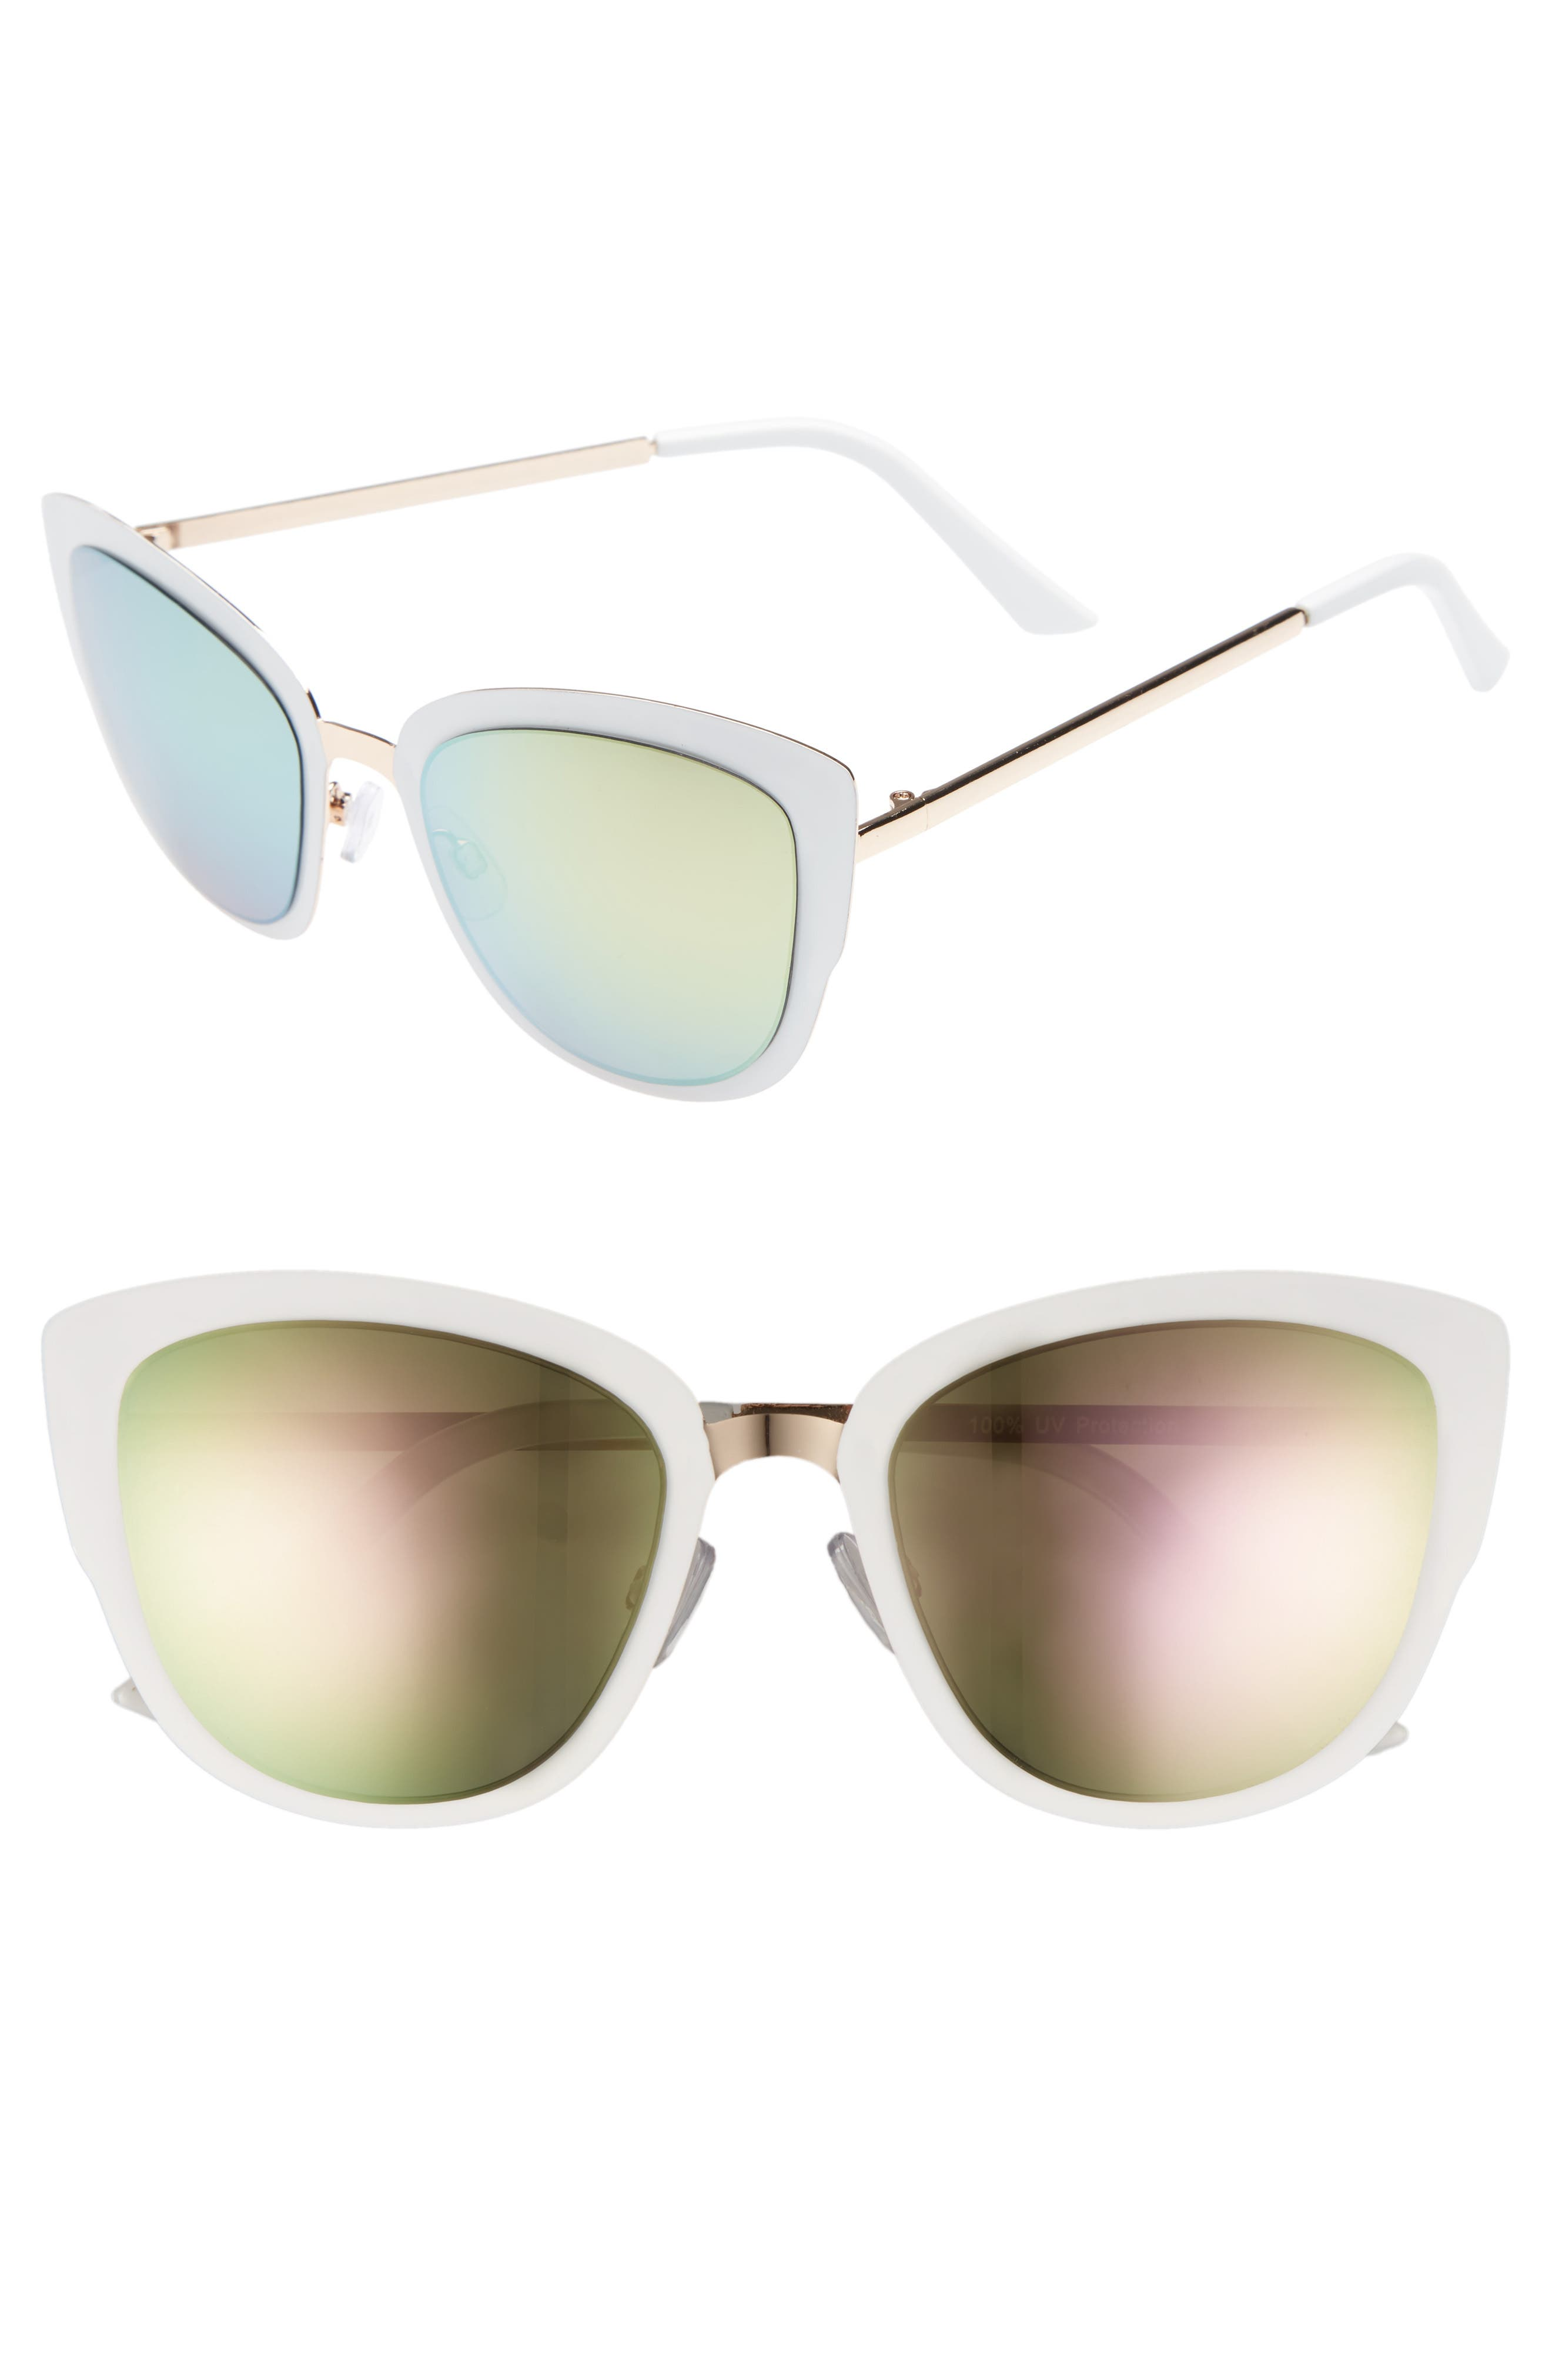 59mm Cat Eye Sunglasses,                             Main thumbnail 1, color,                             GOLD/ WHITE